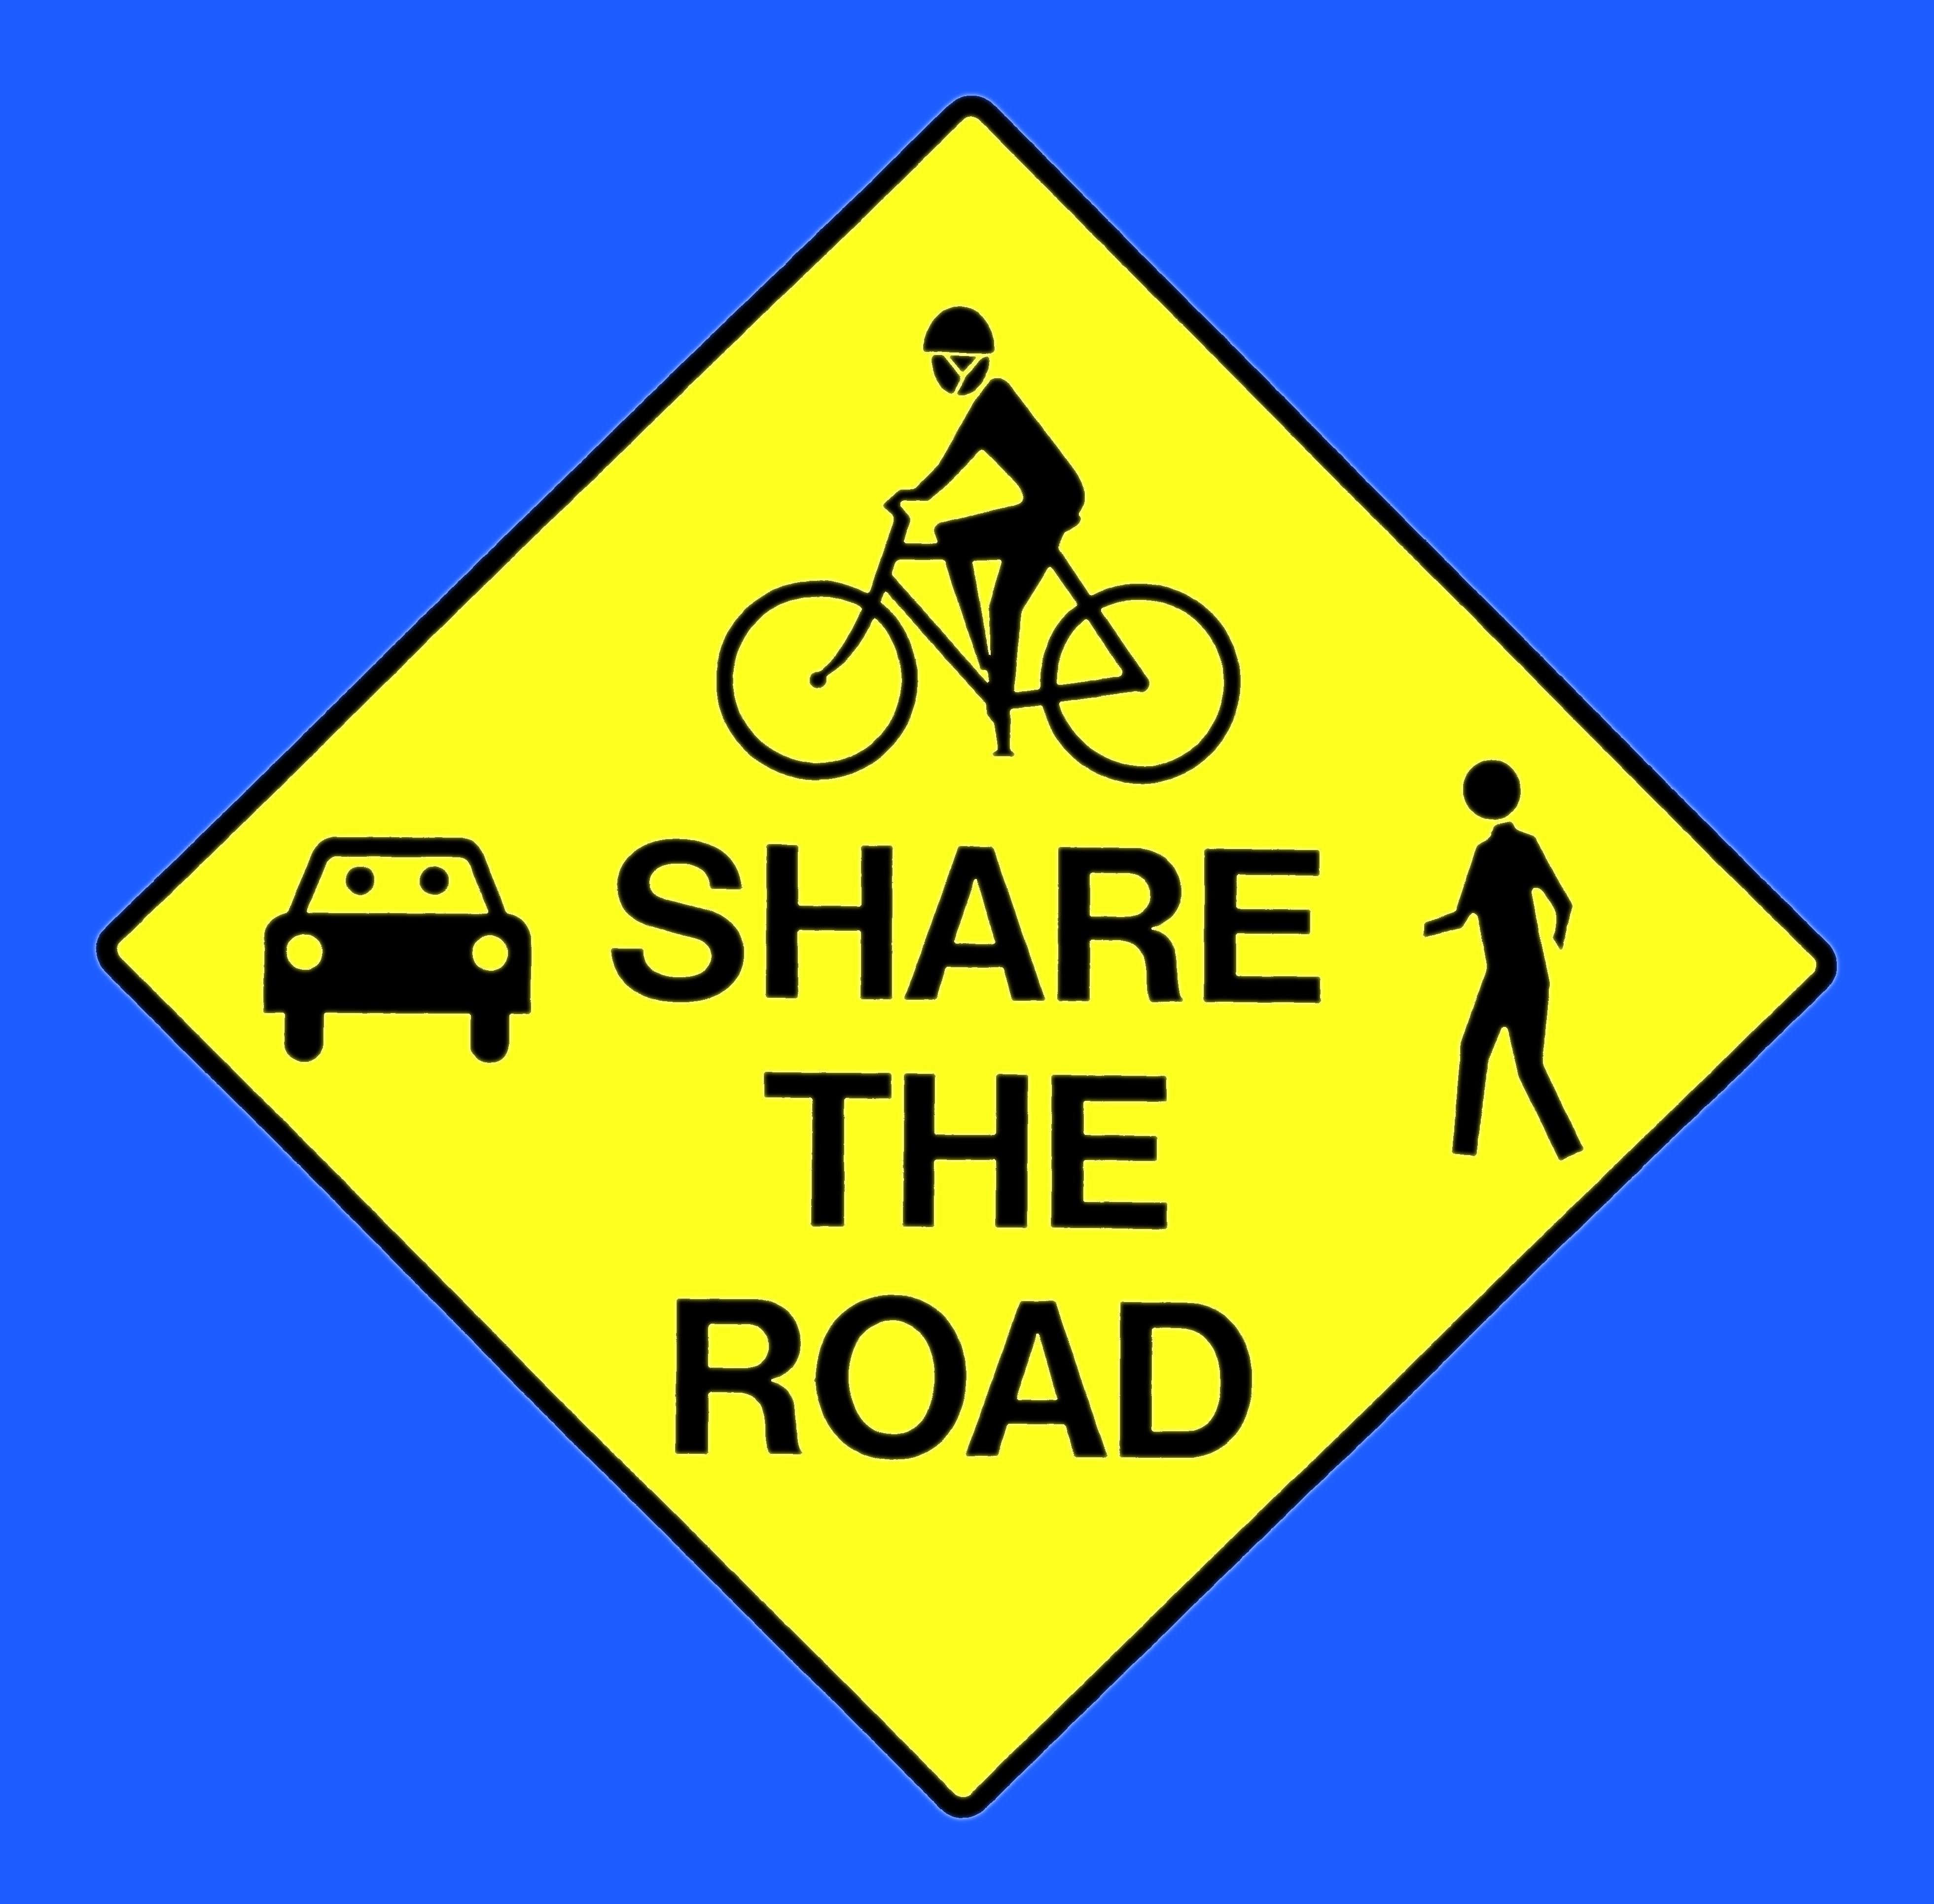 sharing the road The share the road campaign has been around for a while, but here's some frank explanation about how riders and drivers can coexist in peace 10 things every driver should know about sharing the.